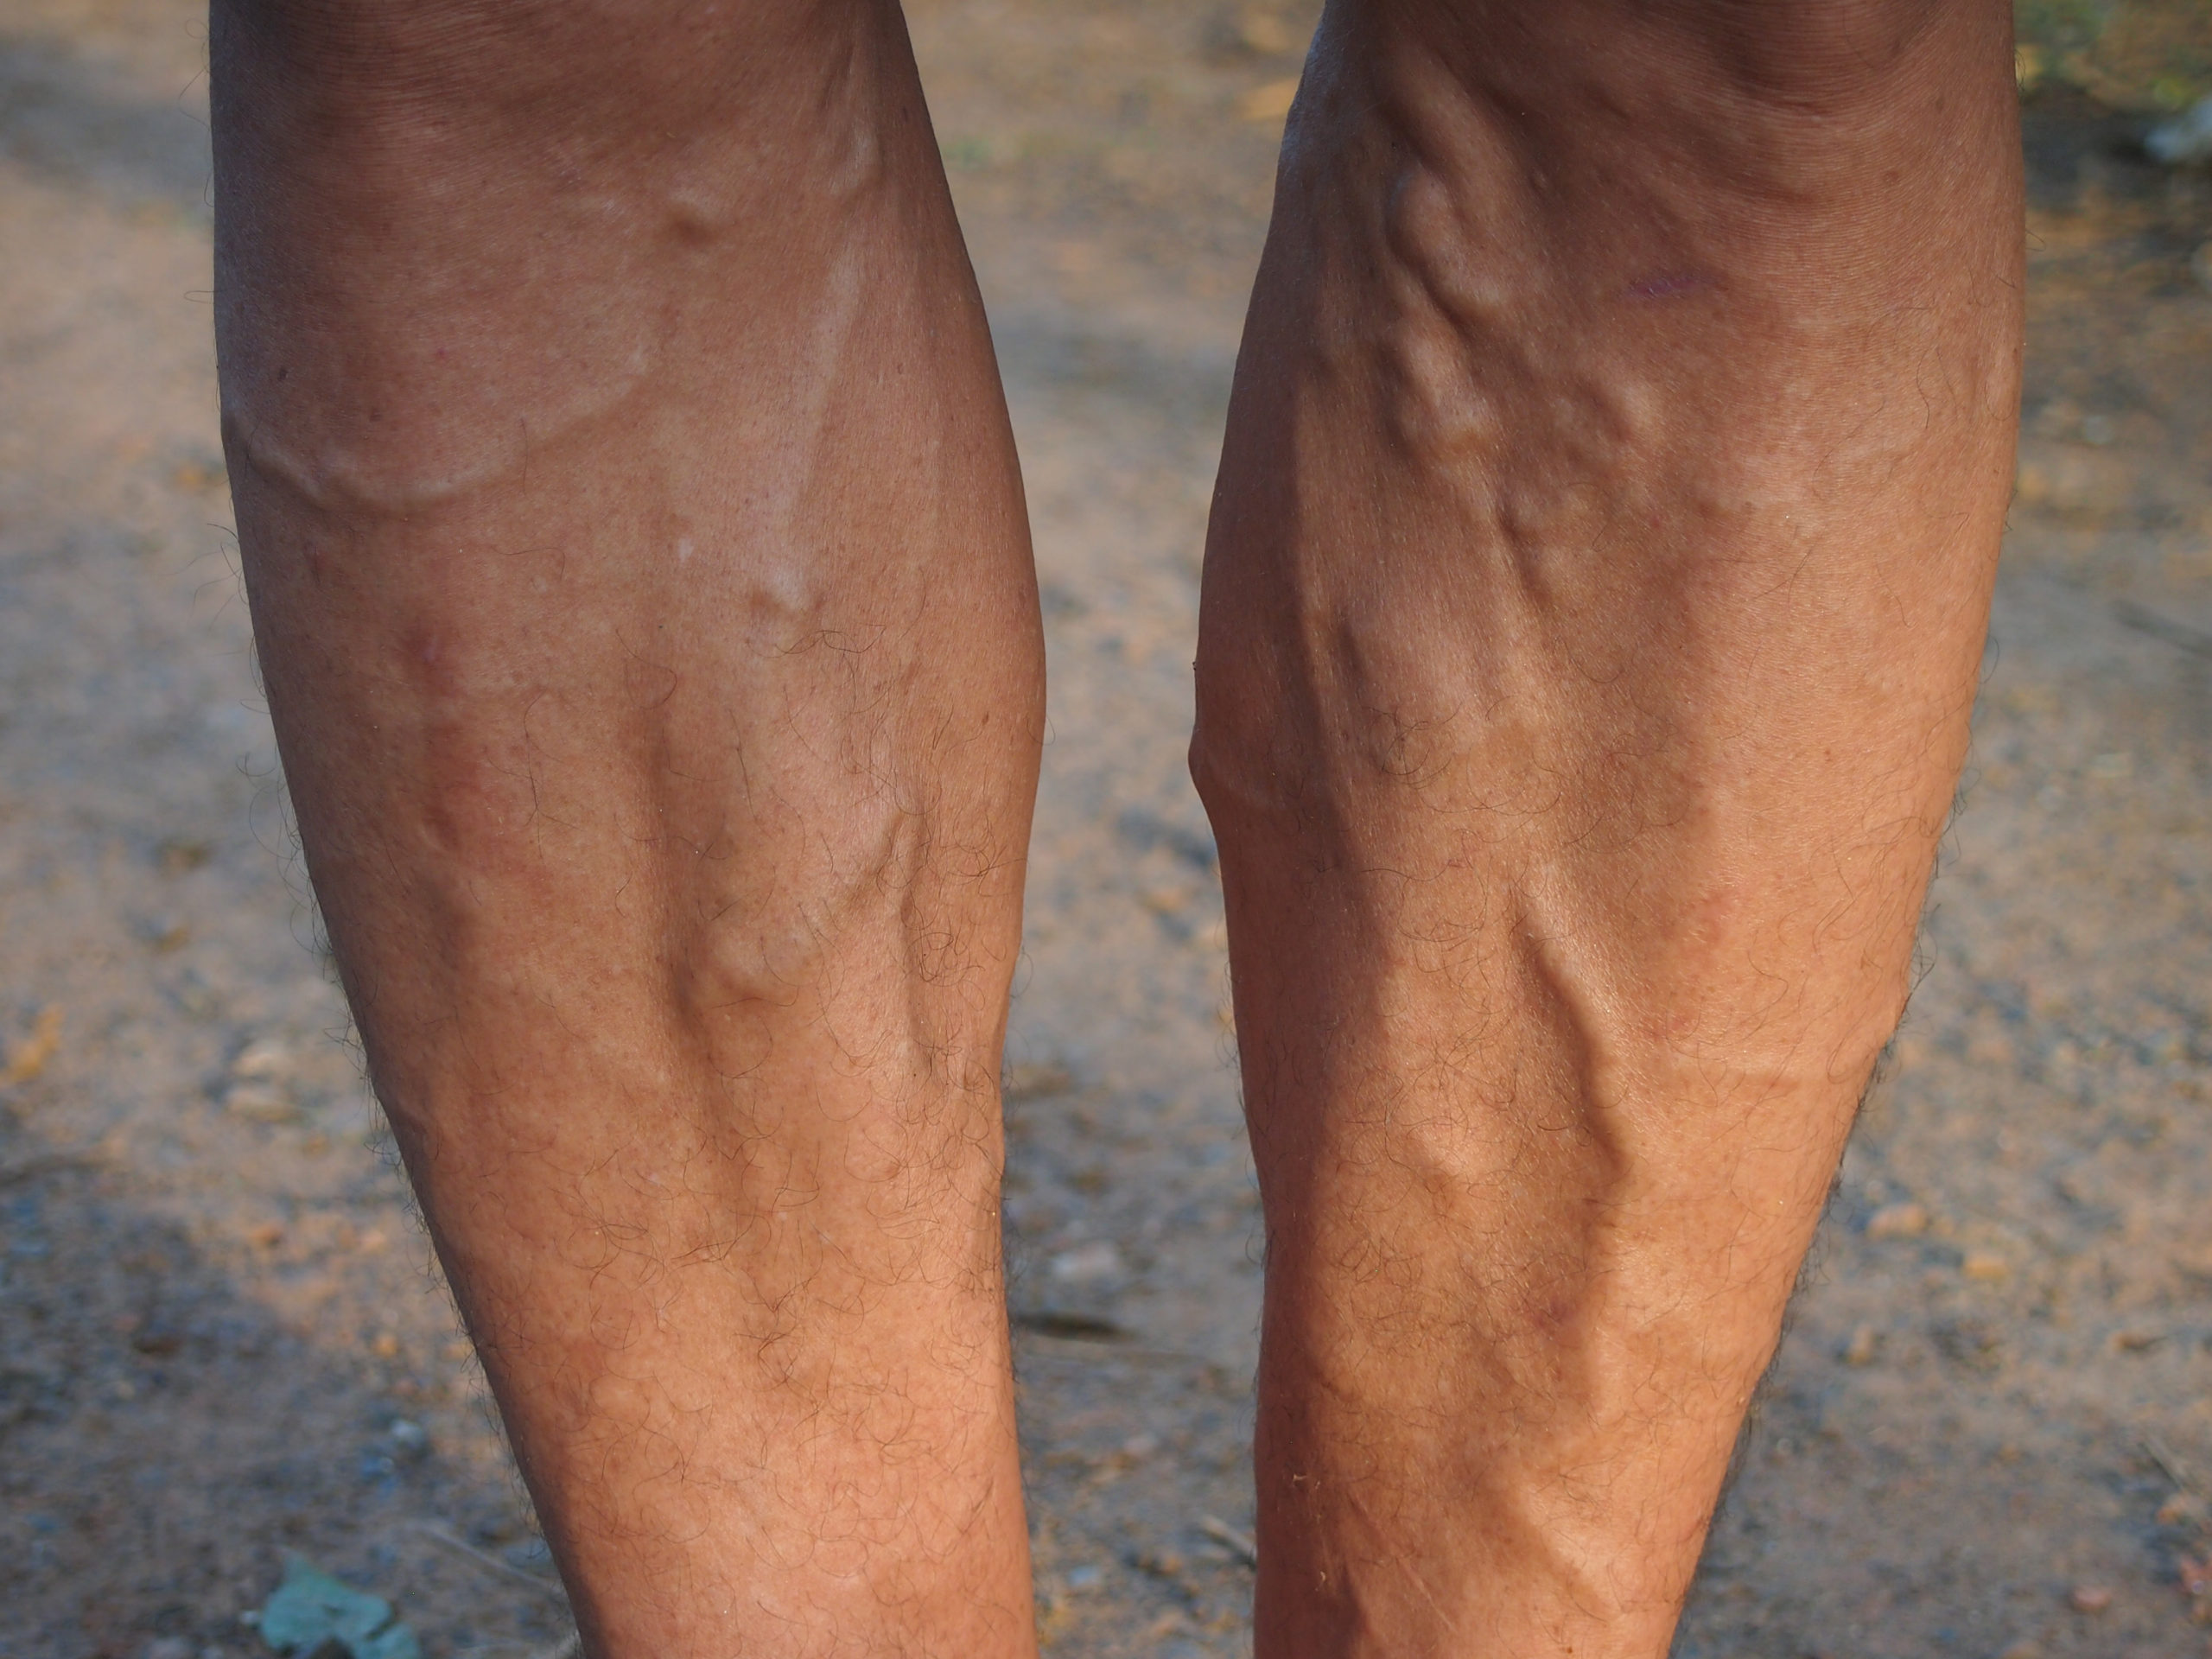 Tips for Men with Varicose Veins